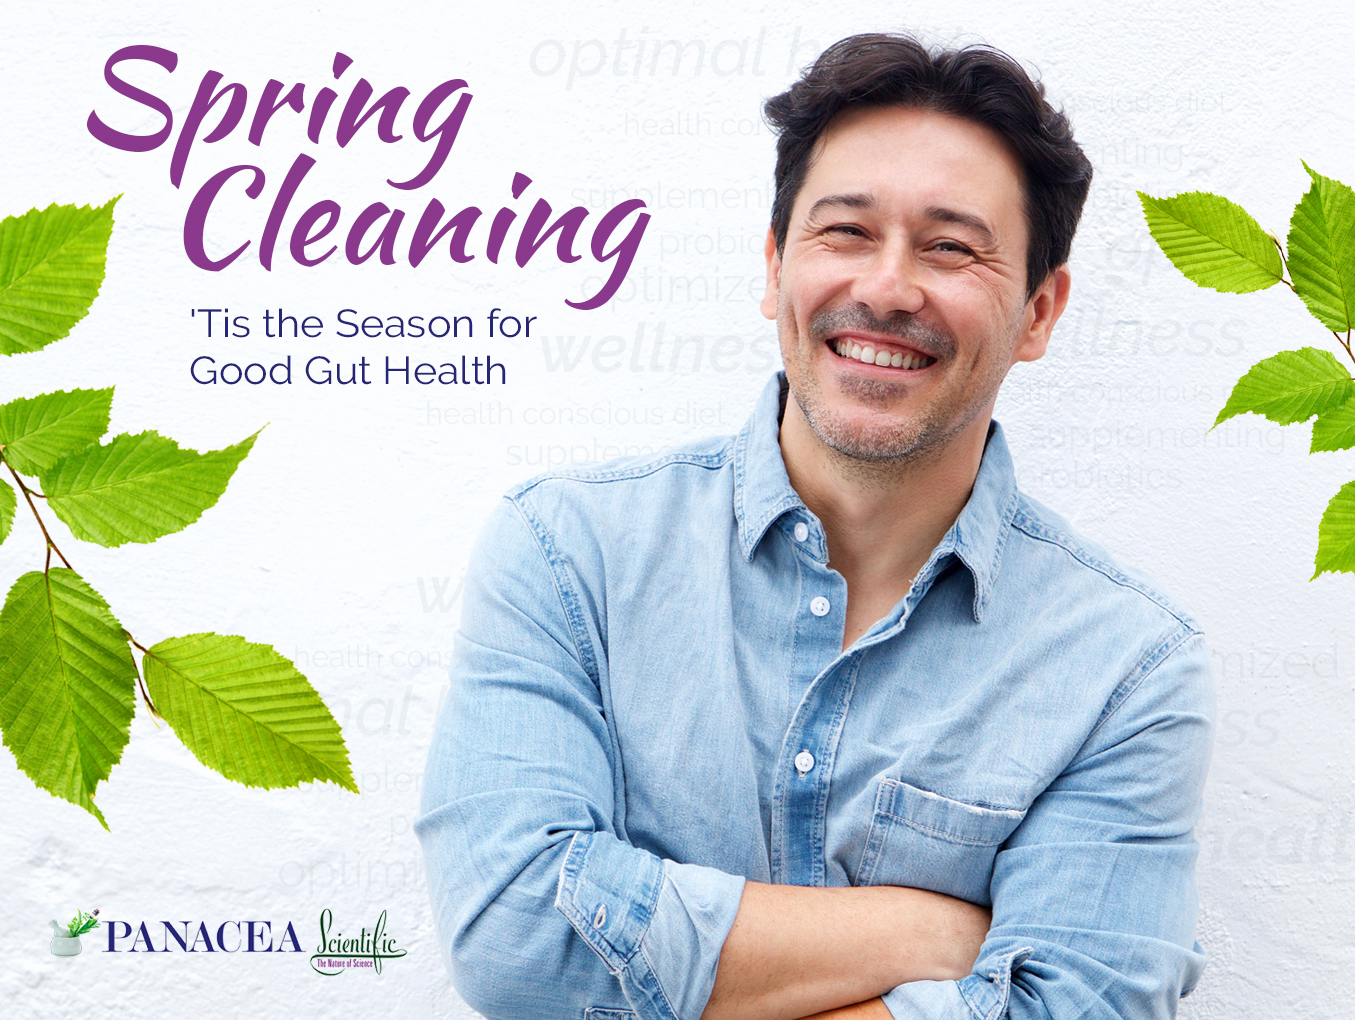 Spring Cleaning — 'Tis the Season for Good Gut Health